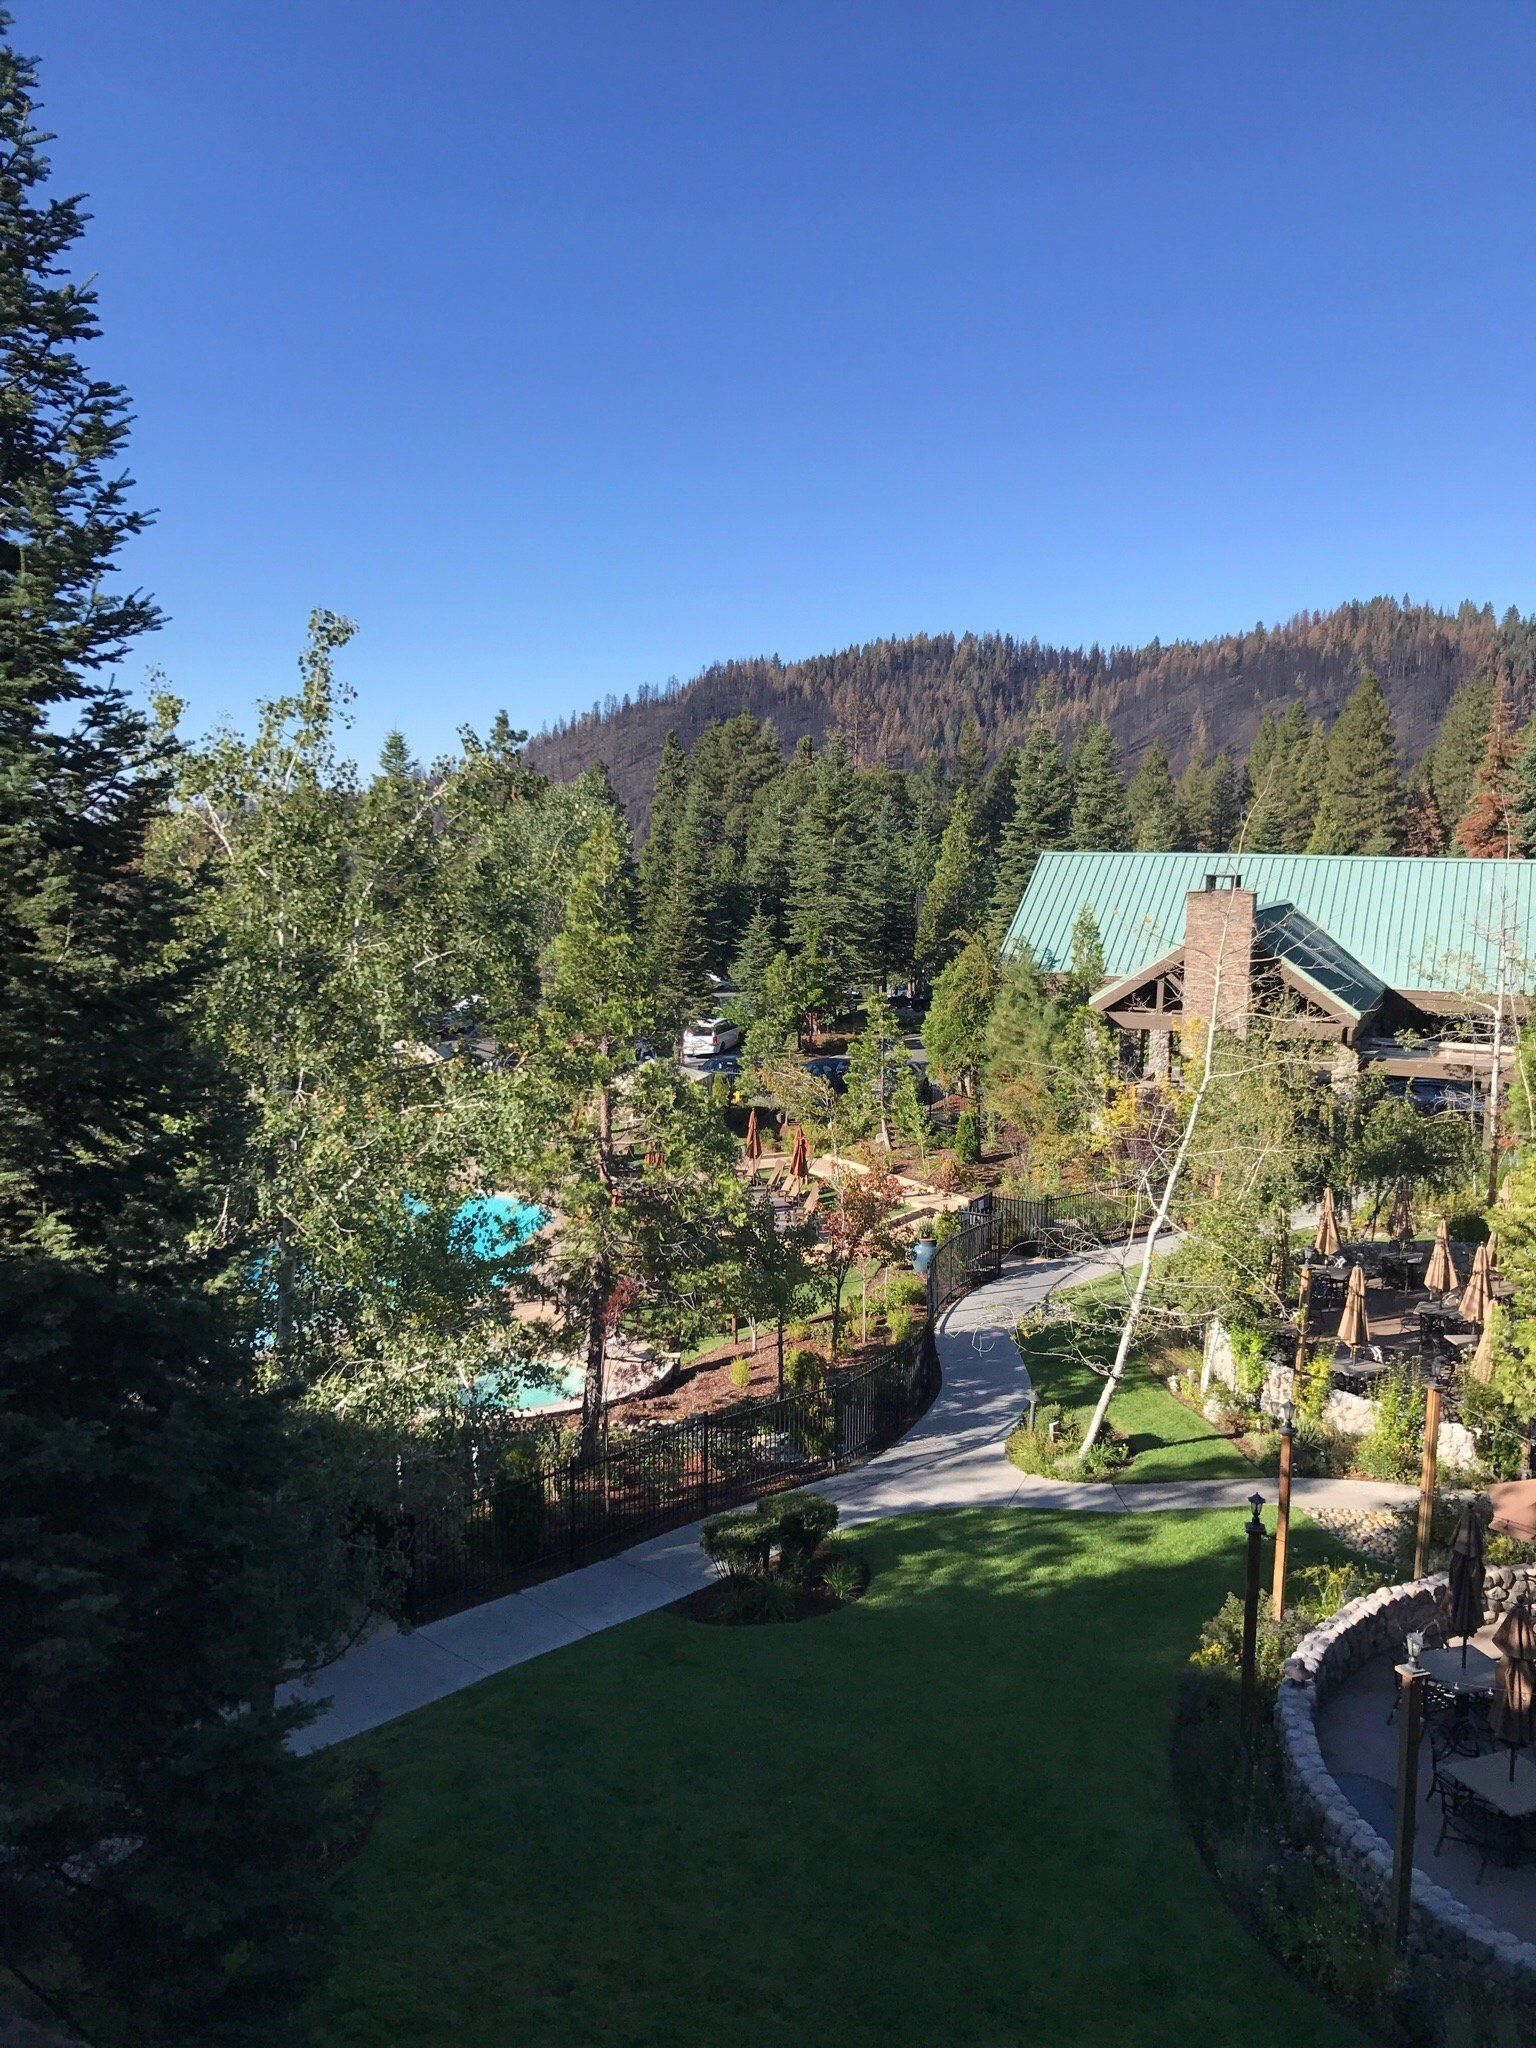 Now 320 Was 3 5 7 On Tripadvisor Tenaya Lodge At Yosemite Fish Camp See 4 763 Traveler Reviews 2 225 Candid Photos And Great Deals For